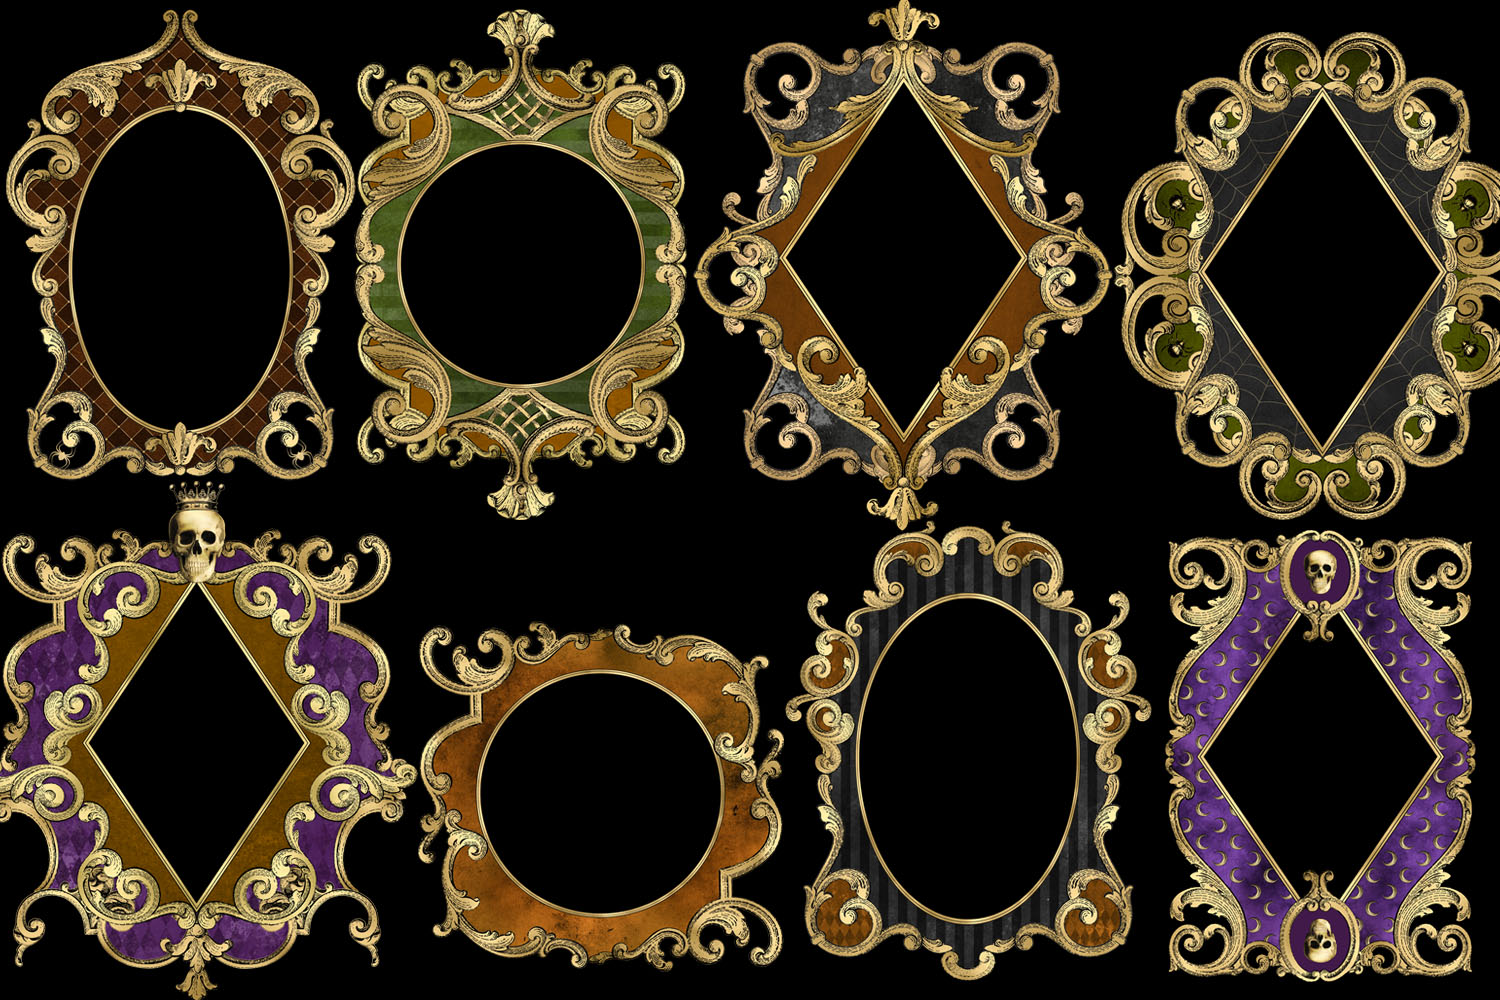 Ornate Halloween Frames Clipart example image 2